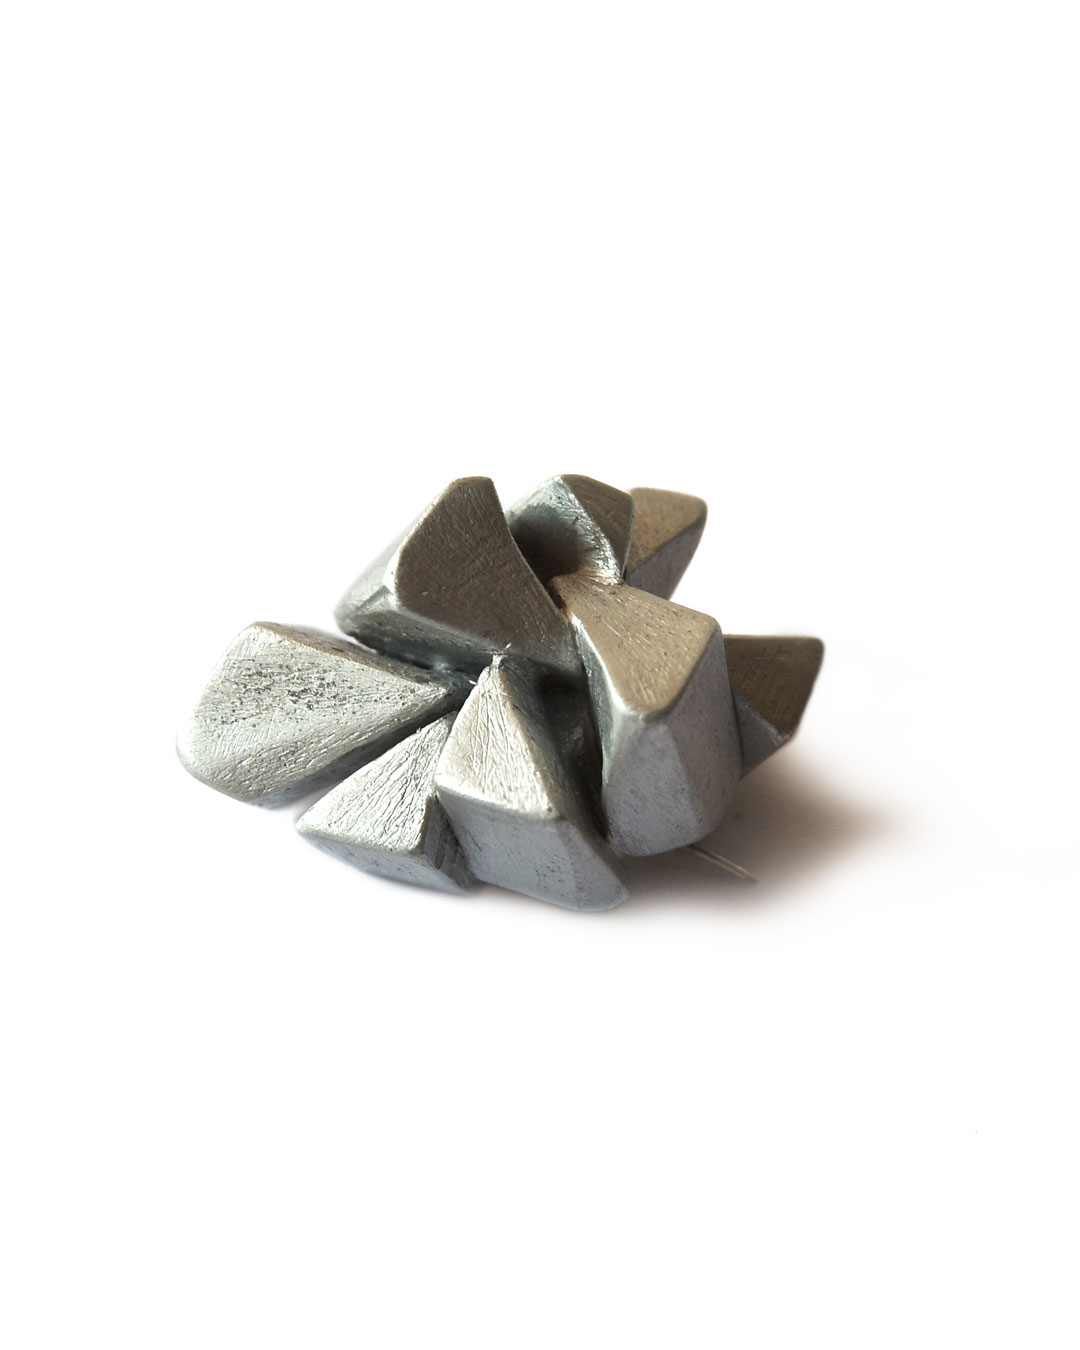 Antje Bräuer, Kleine Riesen (Small Journeys), 2008, brooch; aluminium, steel, 38 x 26 x 27 mm, €195